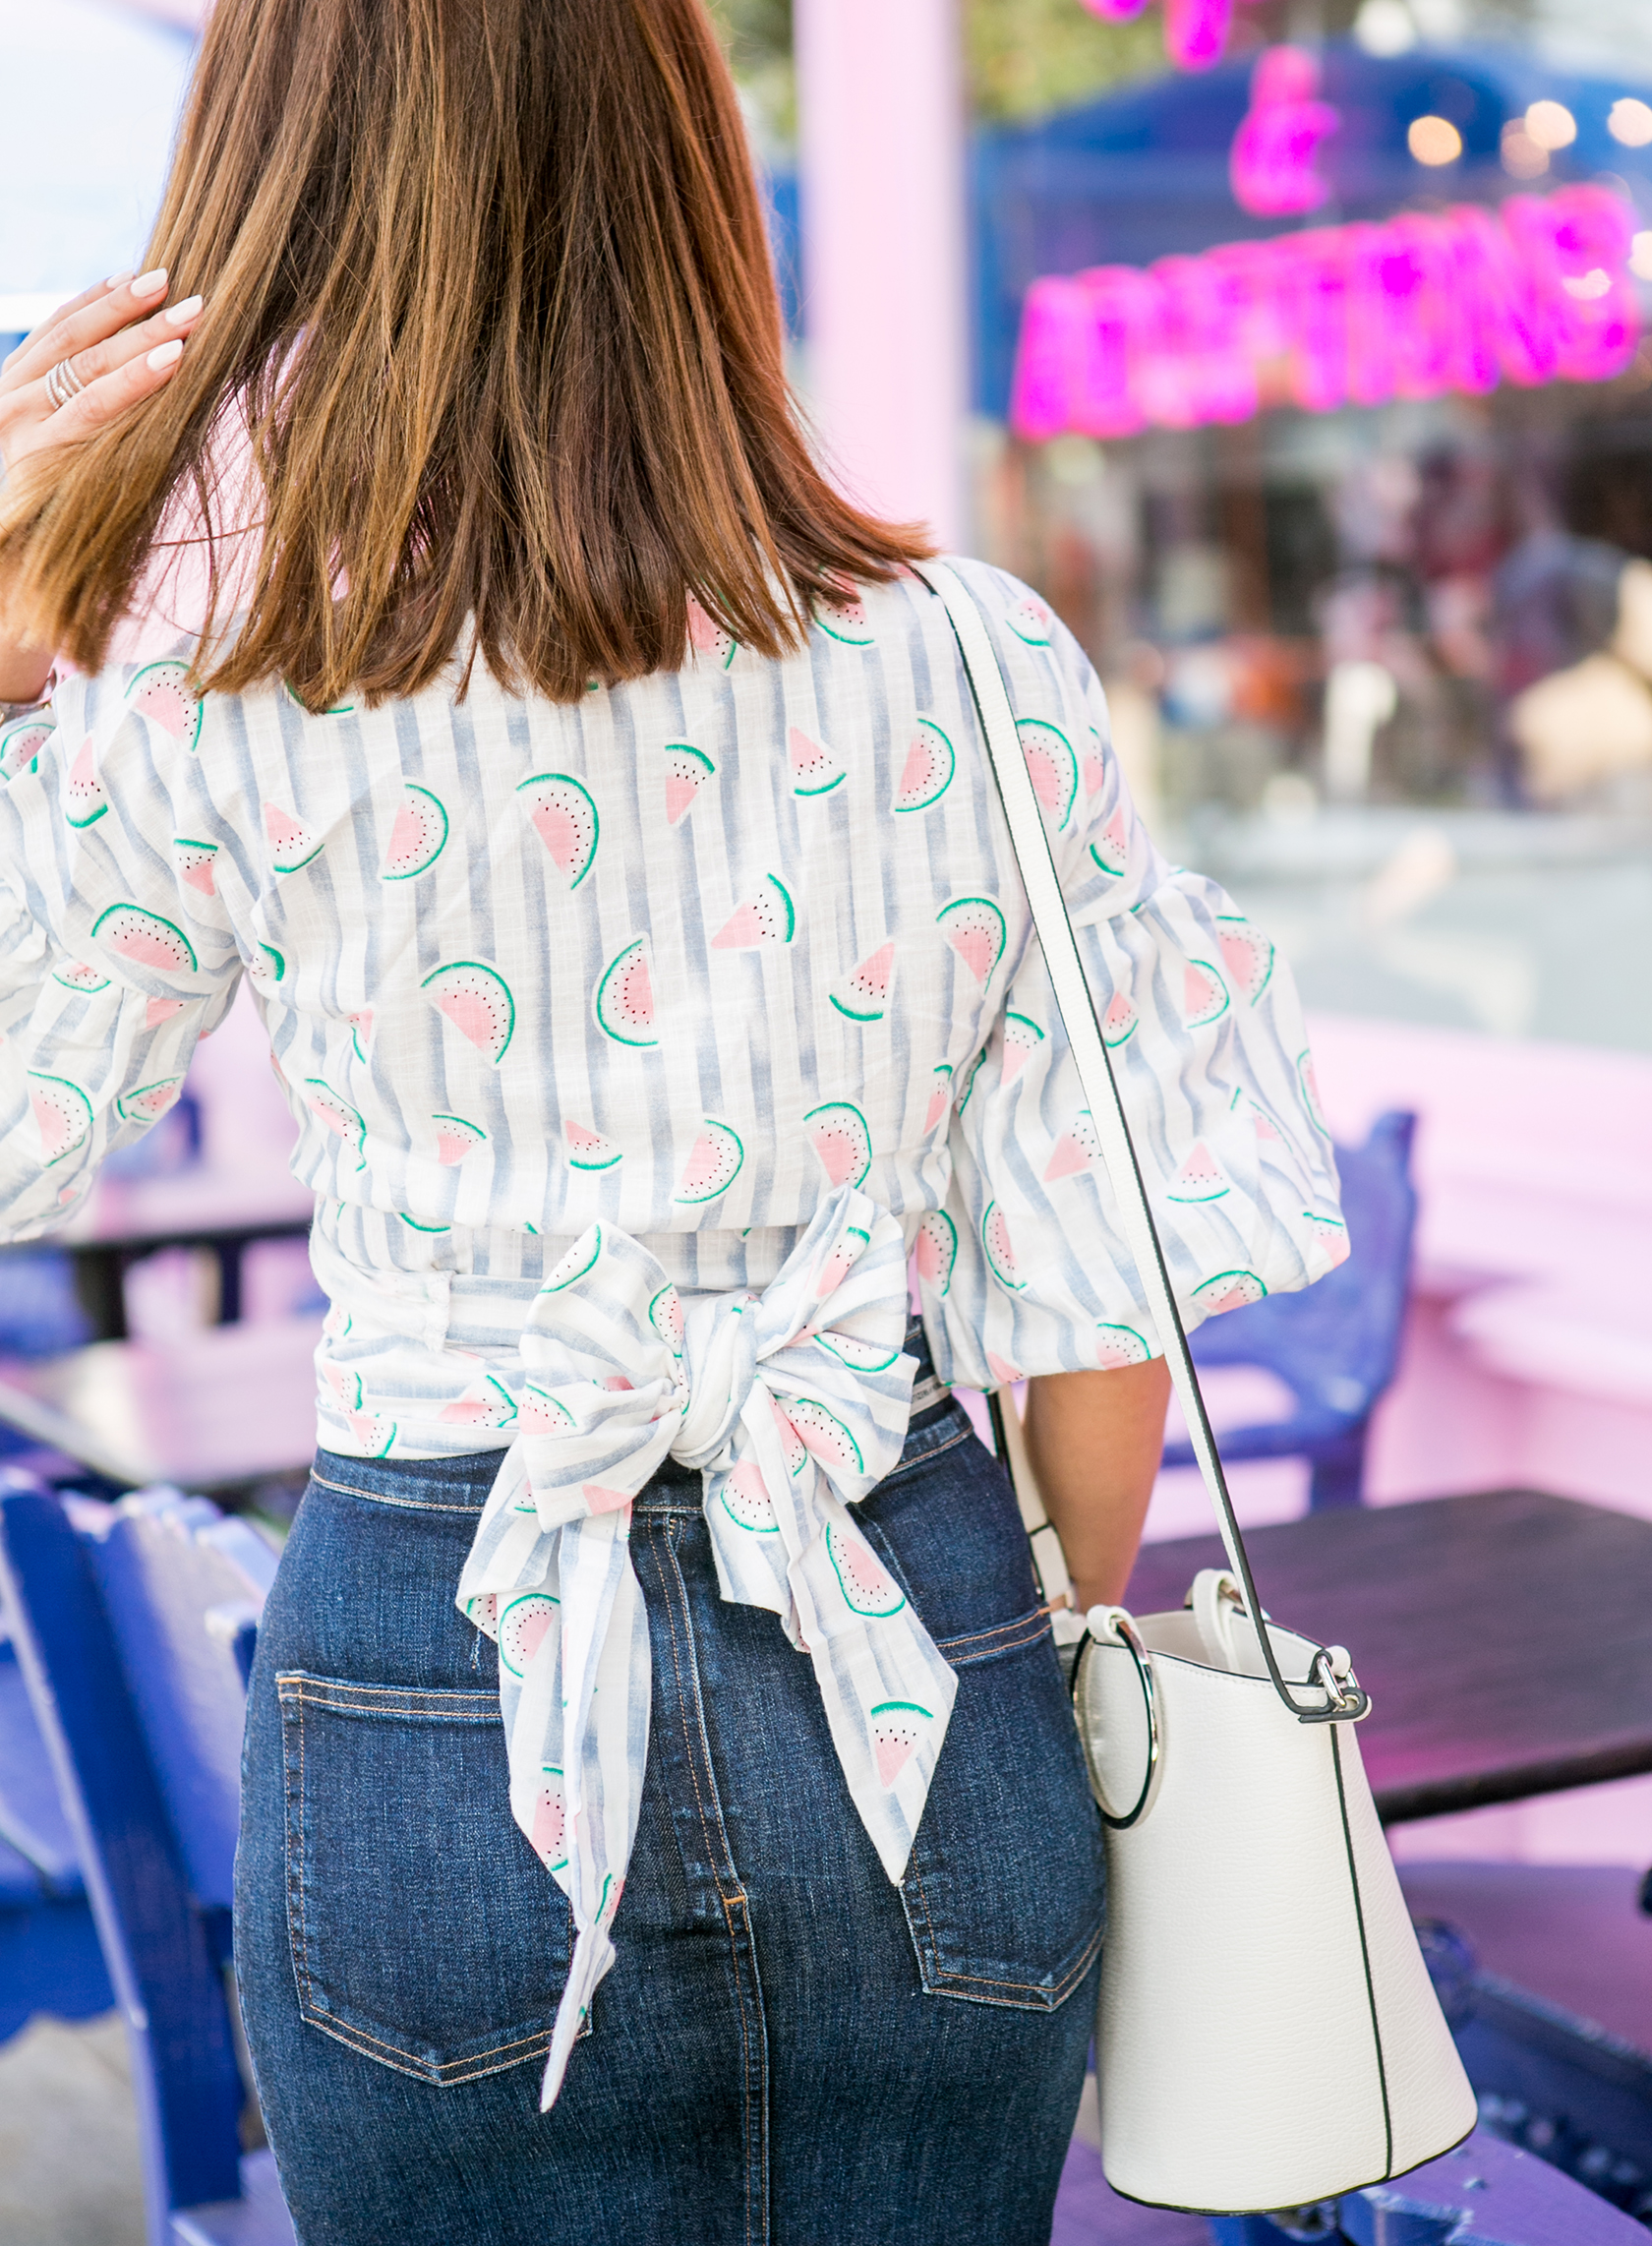 Sydne Style shows cute tie back tops for summer from shein